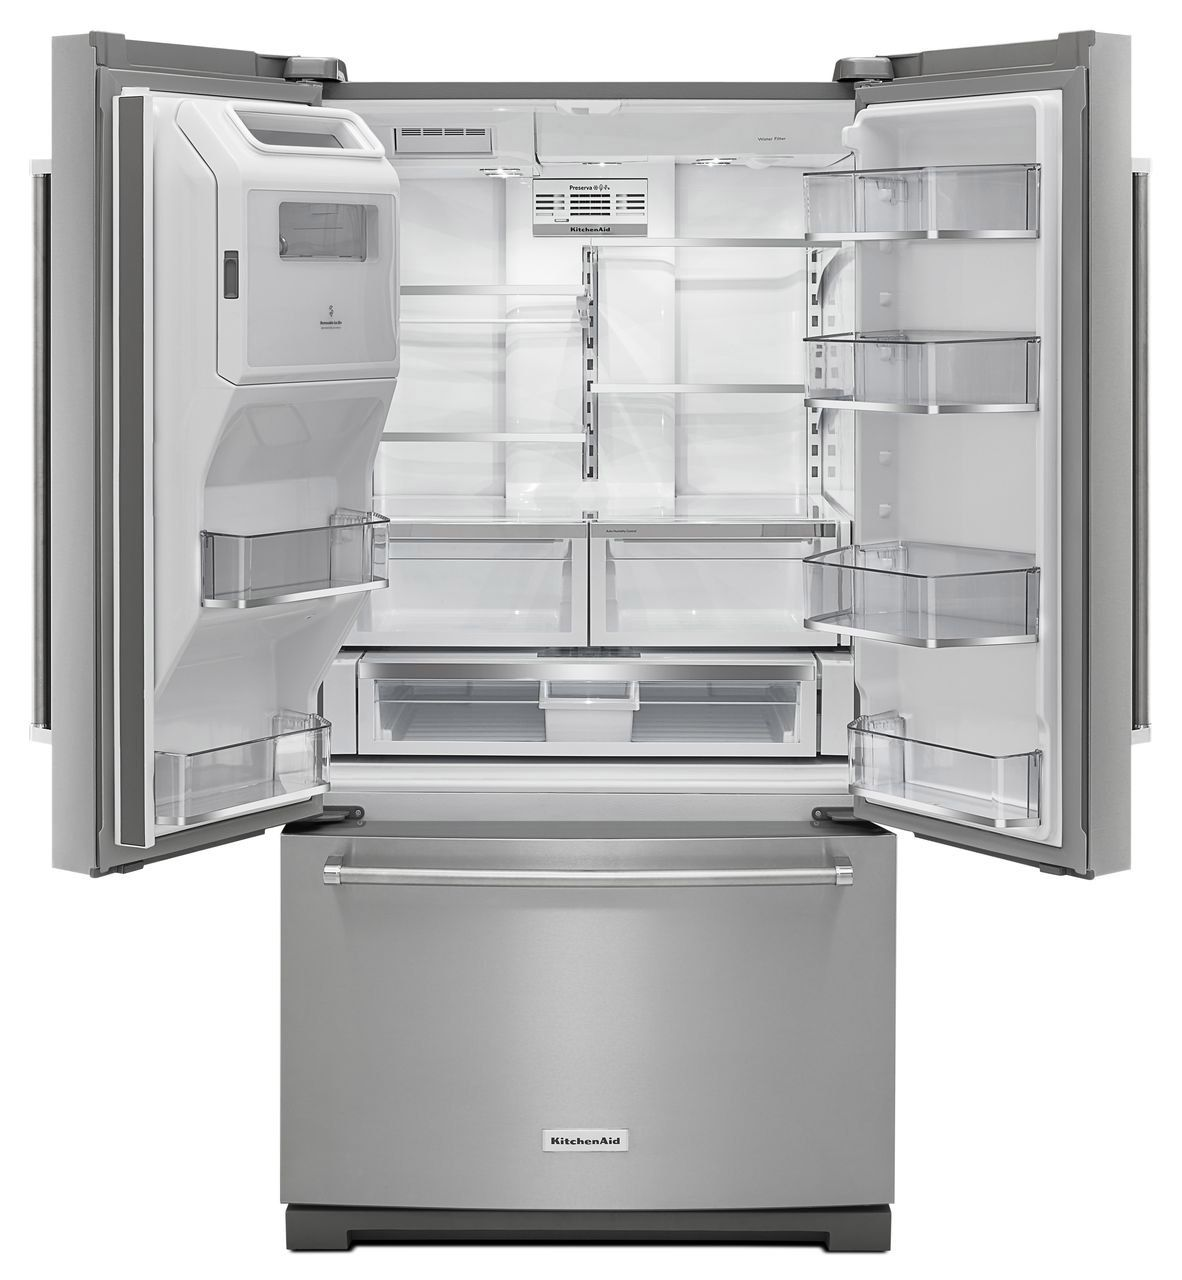 Kitchenaid French Door Refrigerator Krff507ess